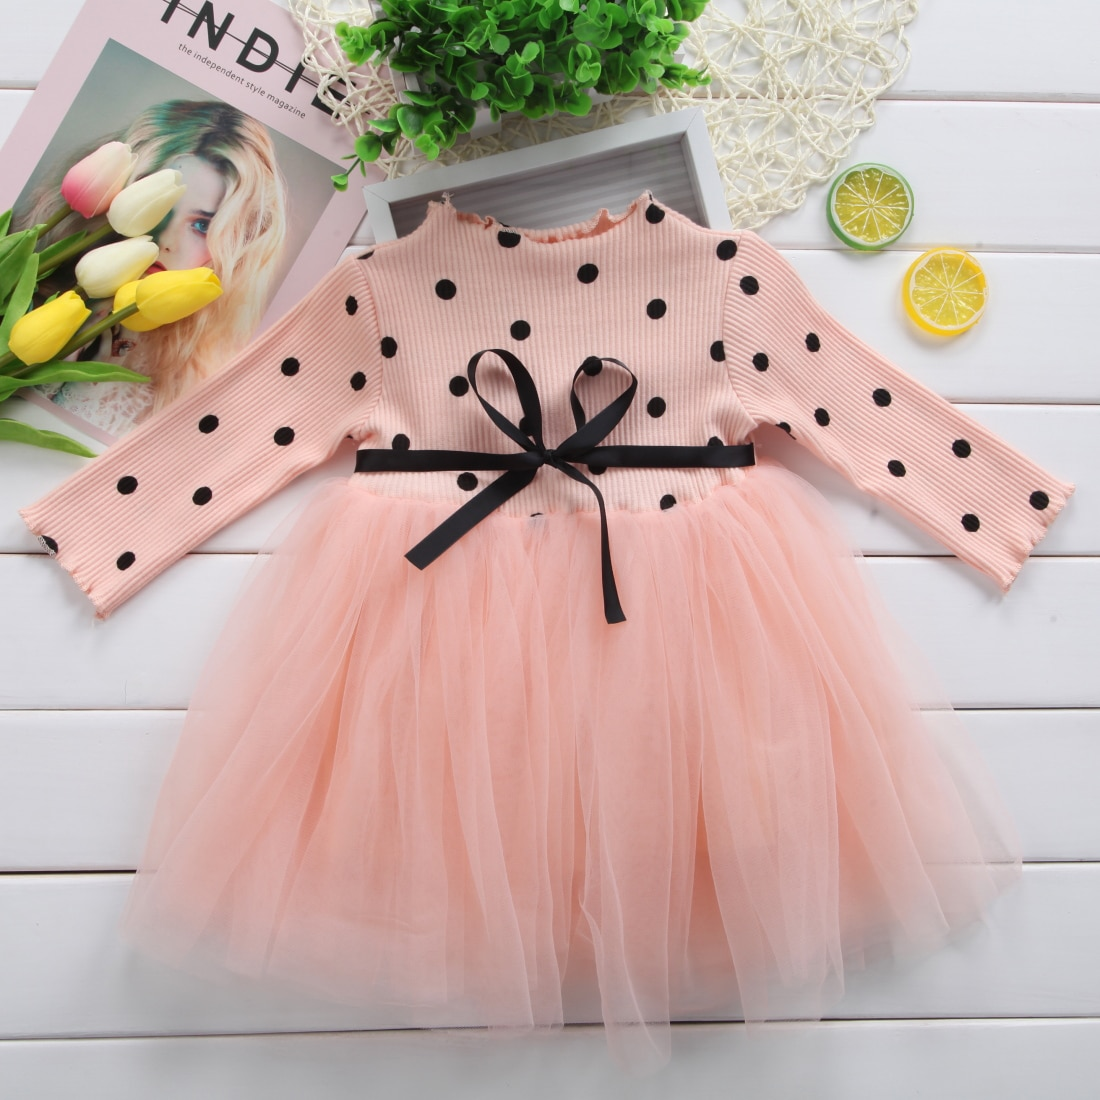 Girl Princess Long Sleeve Dress Newborn Infant Clothes Baby Girl Bow Dot Tutu Ball Gown Party Dresses Kid  Clothes newborn girl infant baby birthday wedding party dress ball gown princess lace up long sleeve front bow kids girl clothes